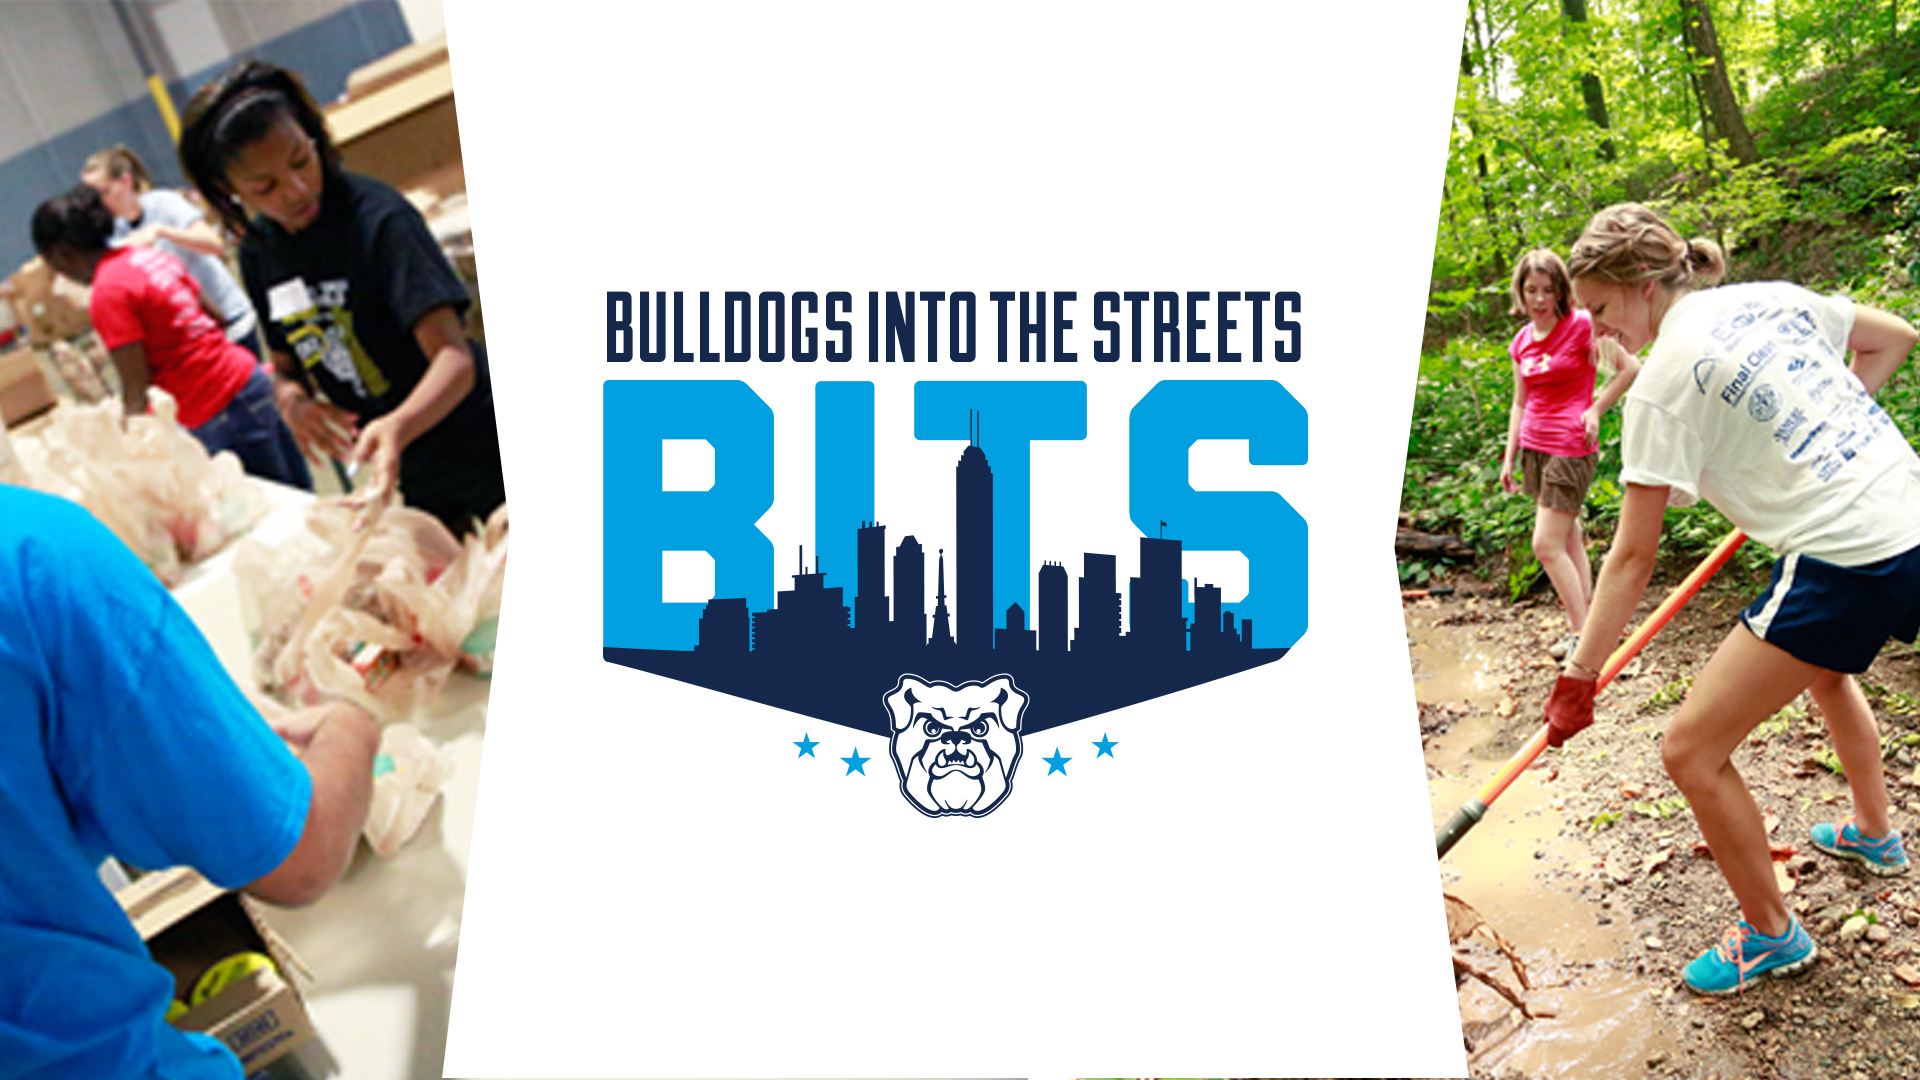 Evansville Bulldogs Into The Streets (BITS)